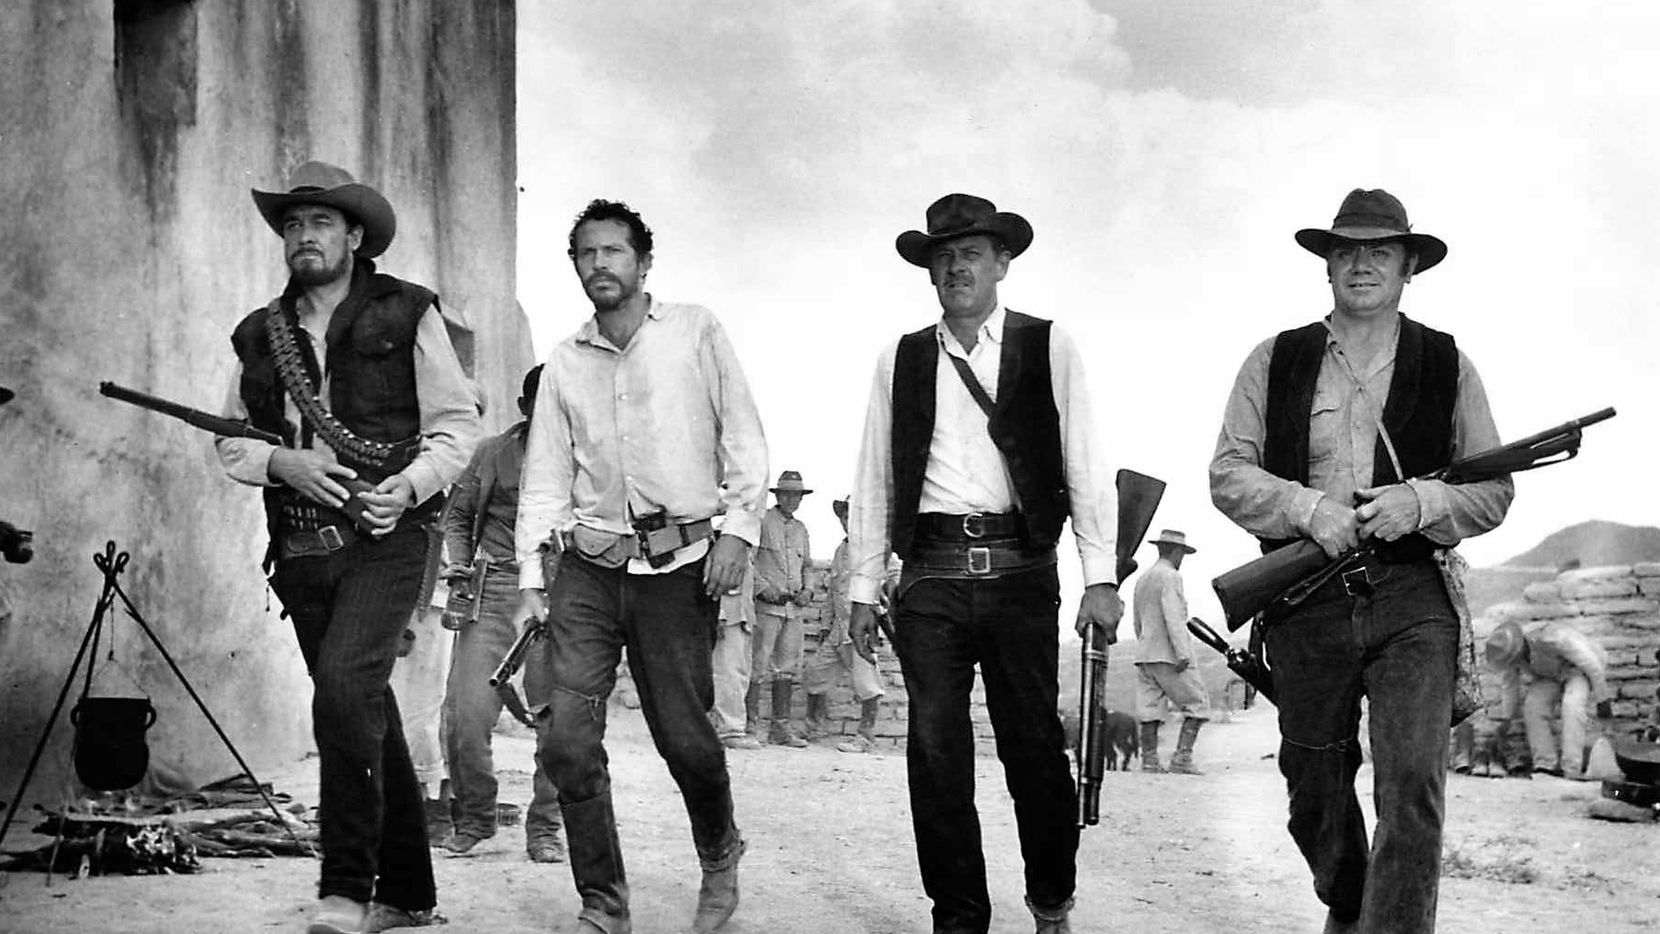 From left are actors Ben Johnson as Tector Gorch, Warren Oates as Lyle Gorch, William Holden as Pike Bishop and Ernest Borgnine as Dutch Engstrom in Warner Bros.' 1995 restored release of Sam Peckinpah's 1969 Western The Wild Bunch.